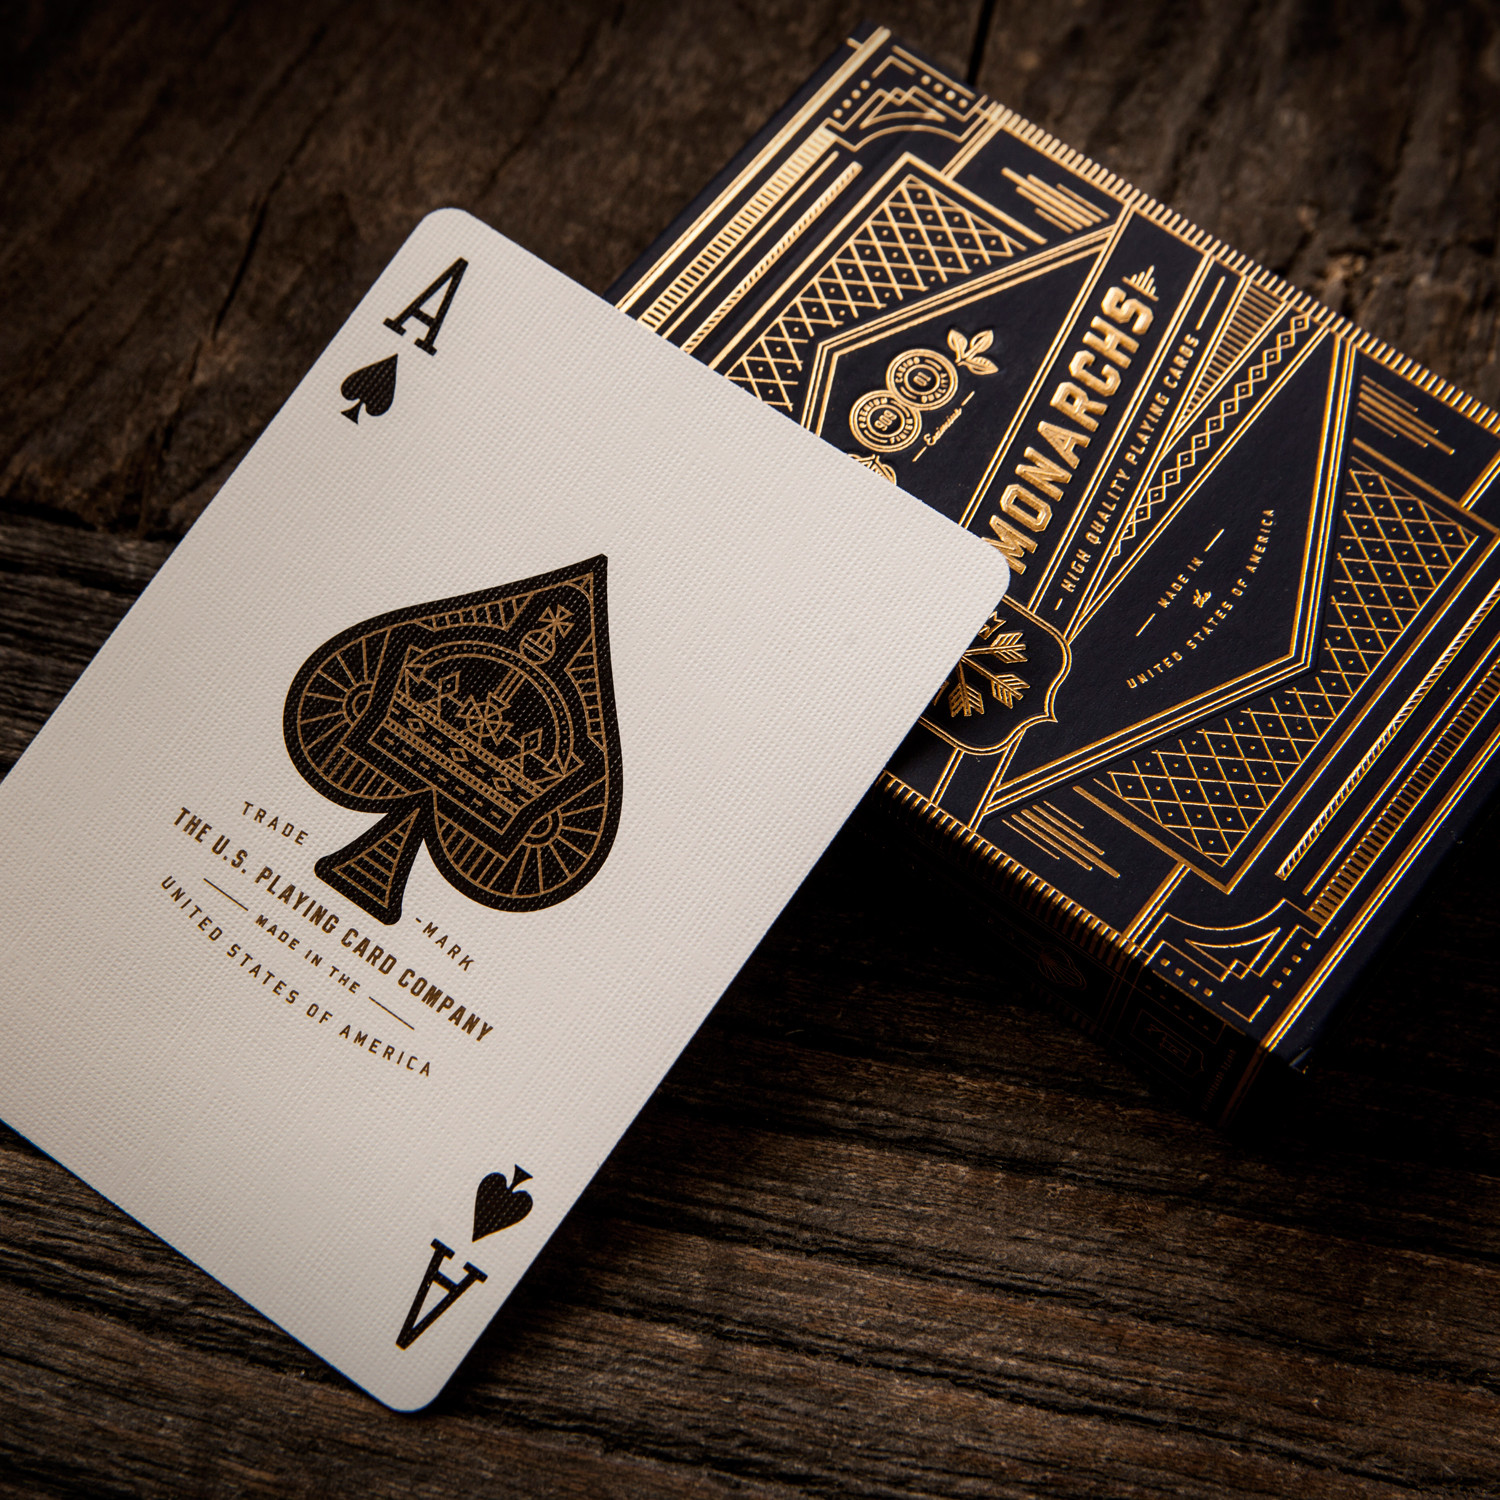 Monarch medallion 2 deck set theory11 touch of modern monarch medallion 2 deck set colourmoves Image collections